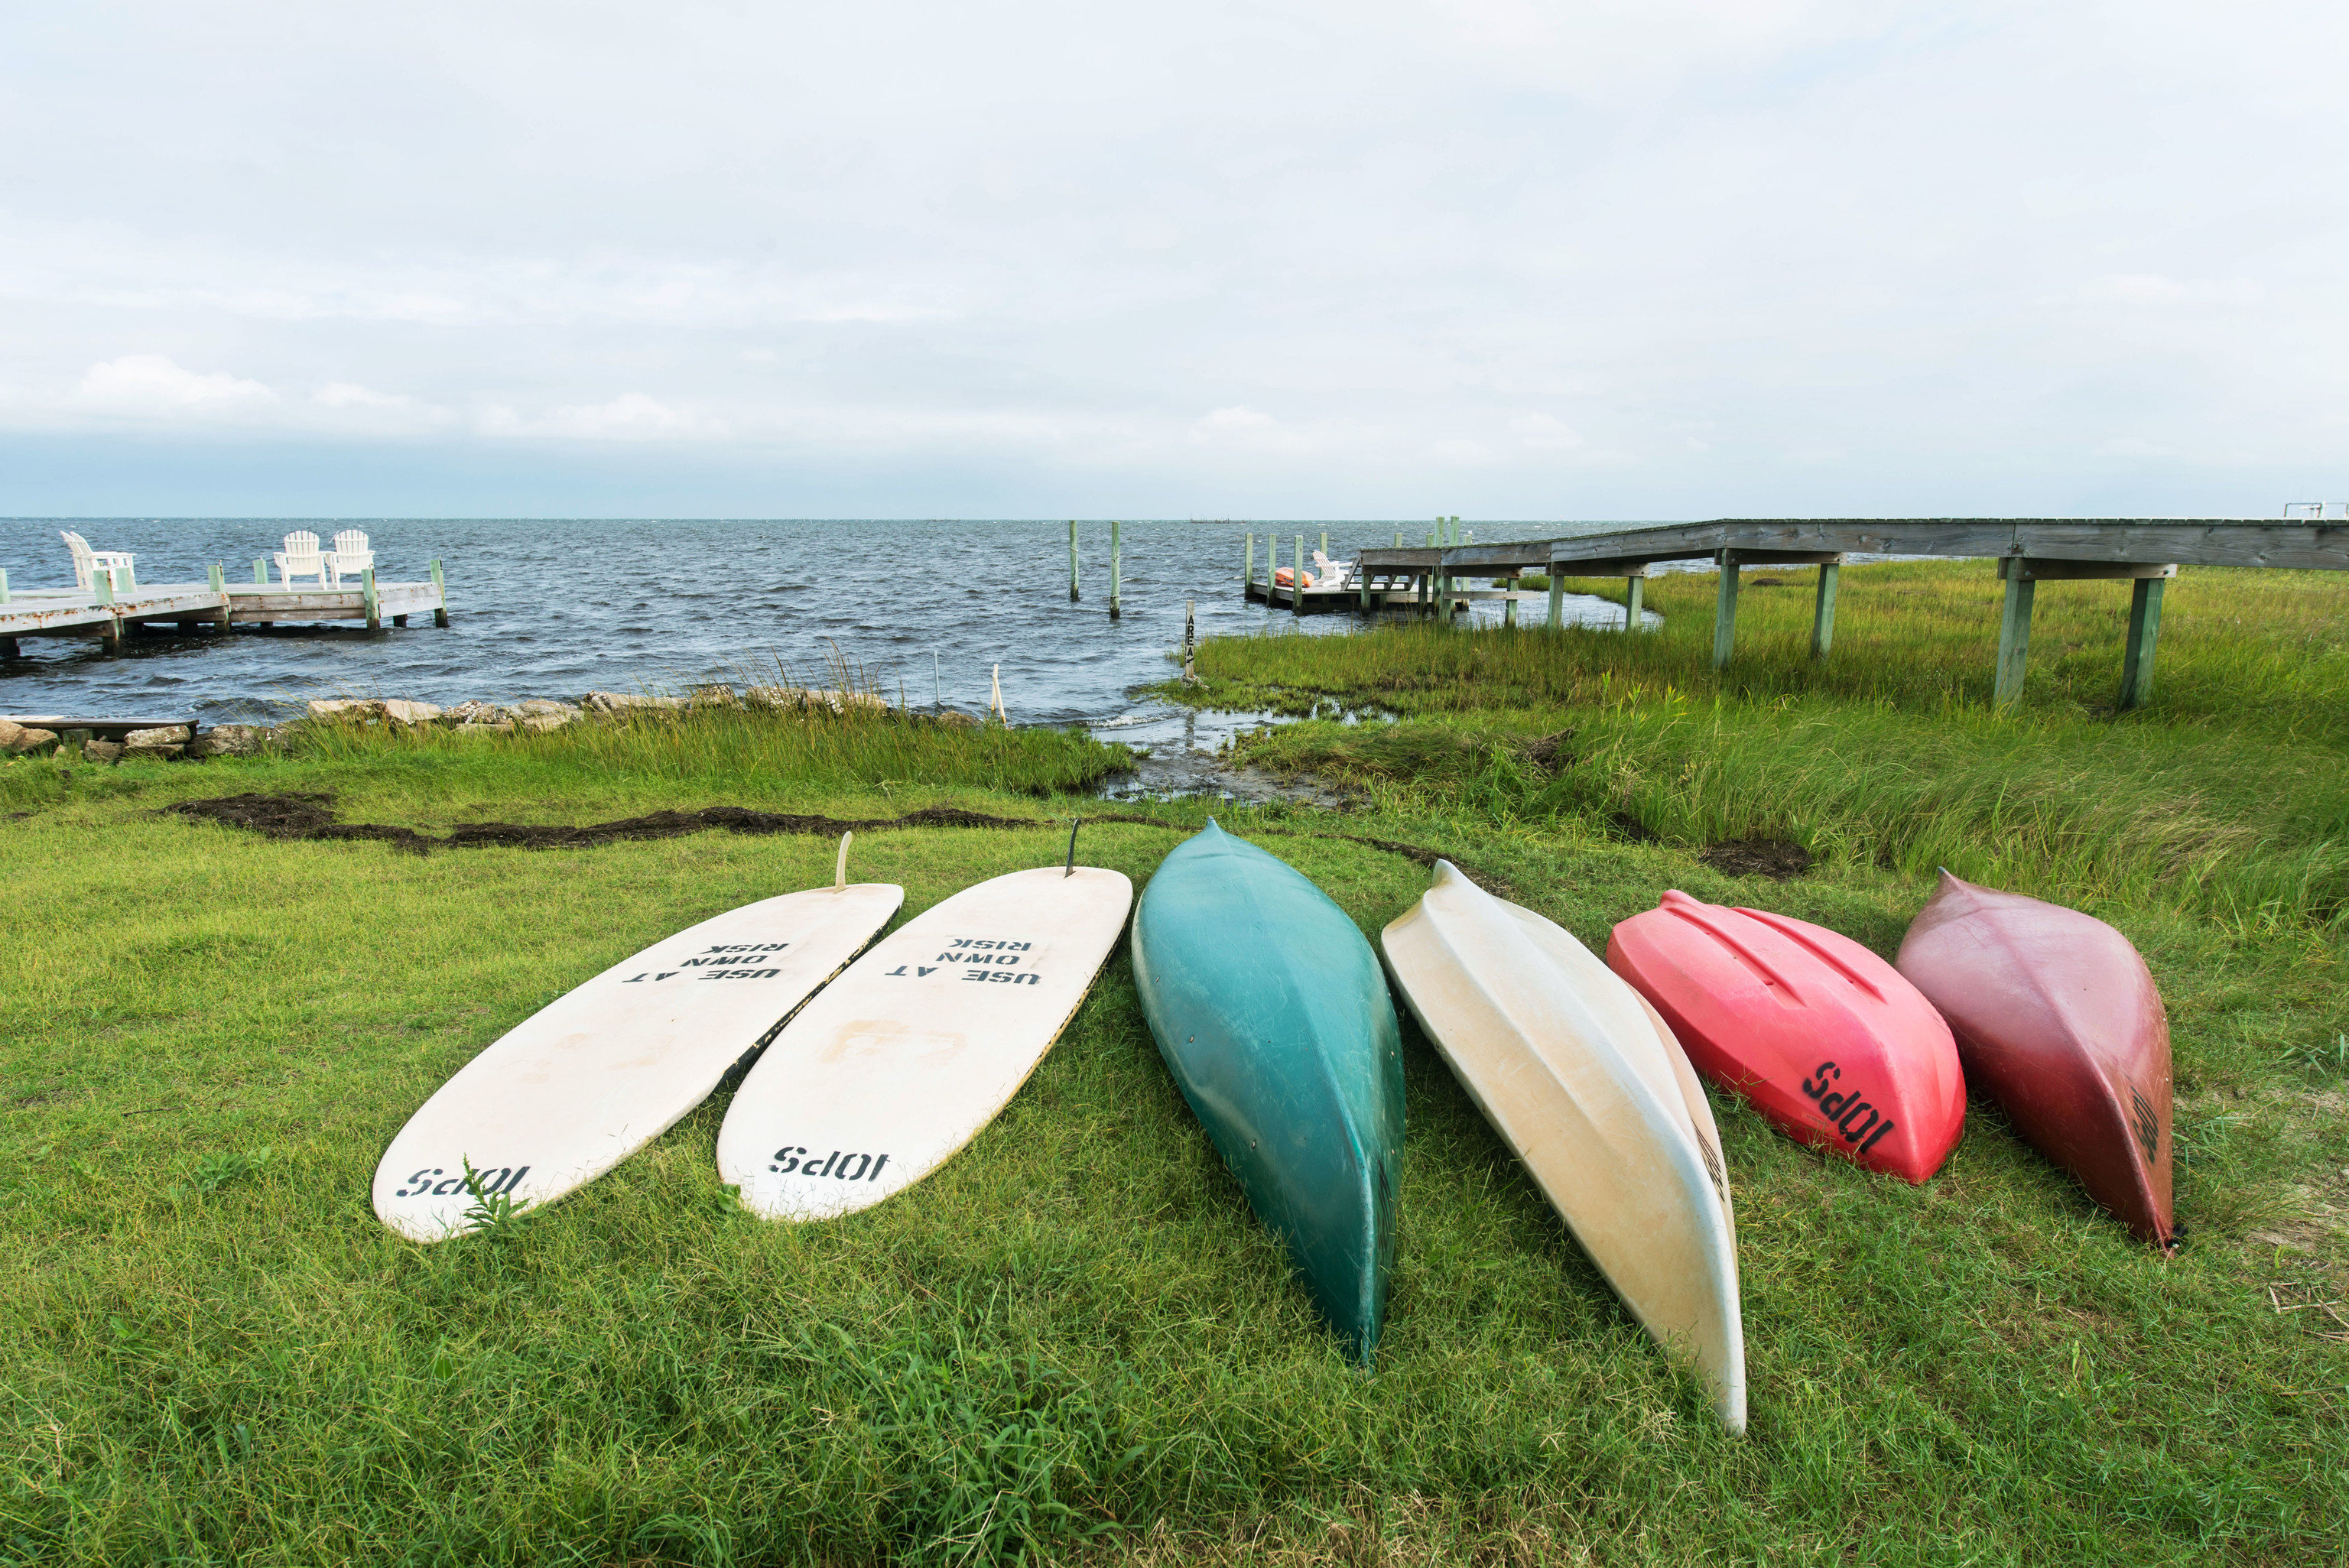 grass sky surfing vehicle surfboard surfing equipment and supplies boating Sea lawn paddle Boat